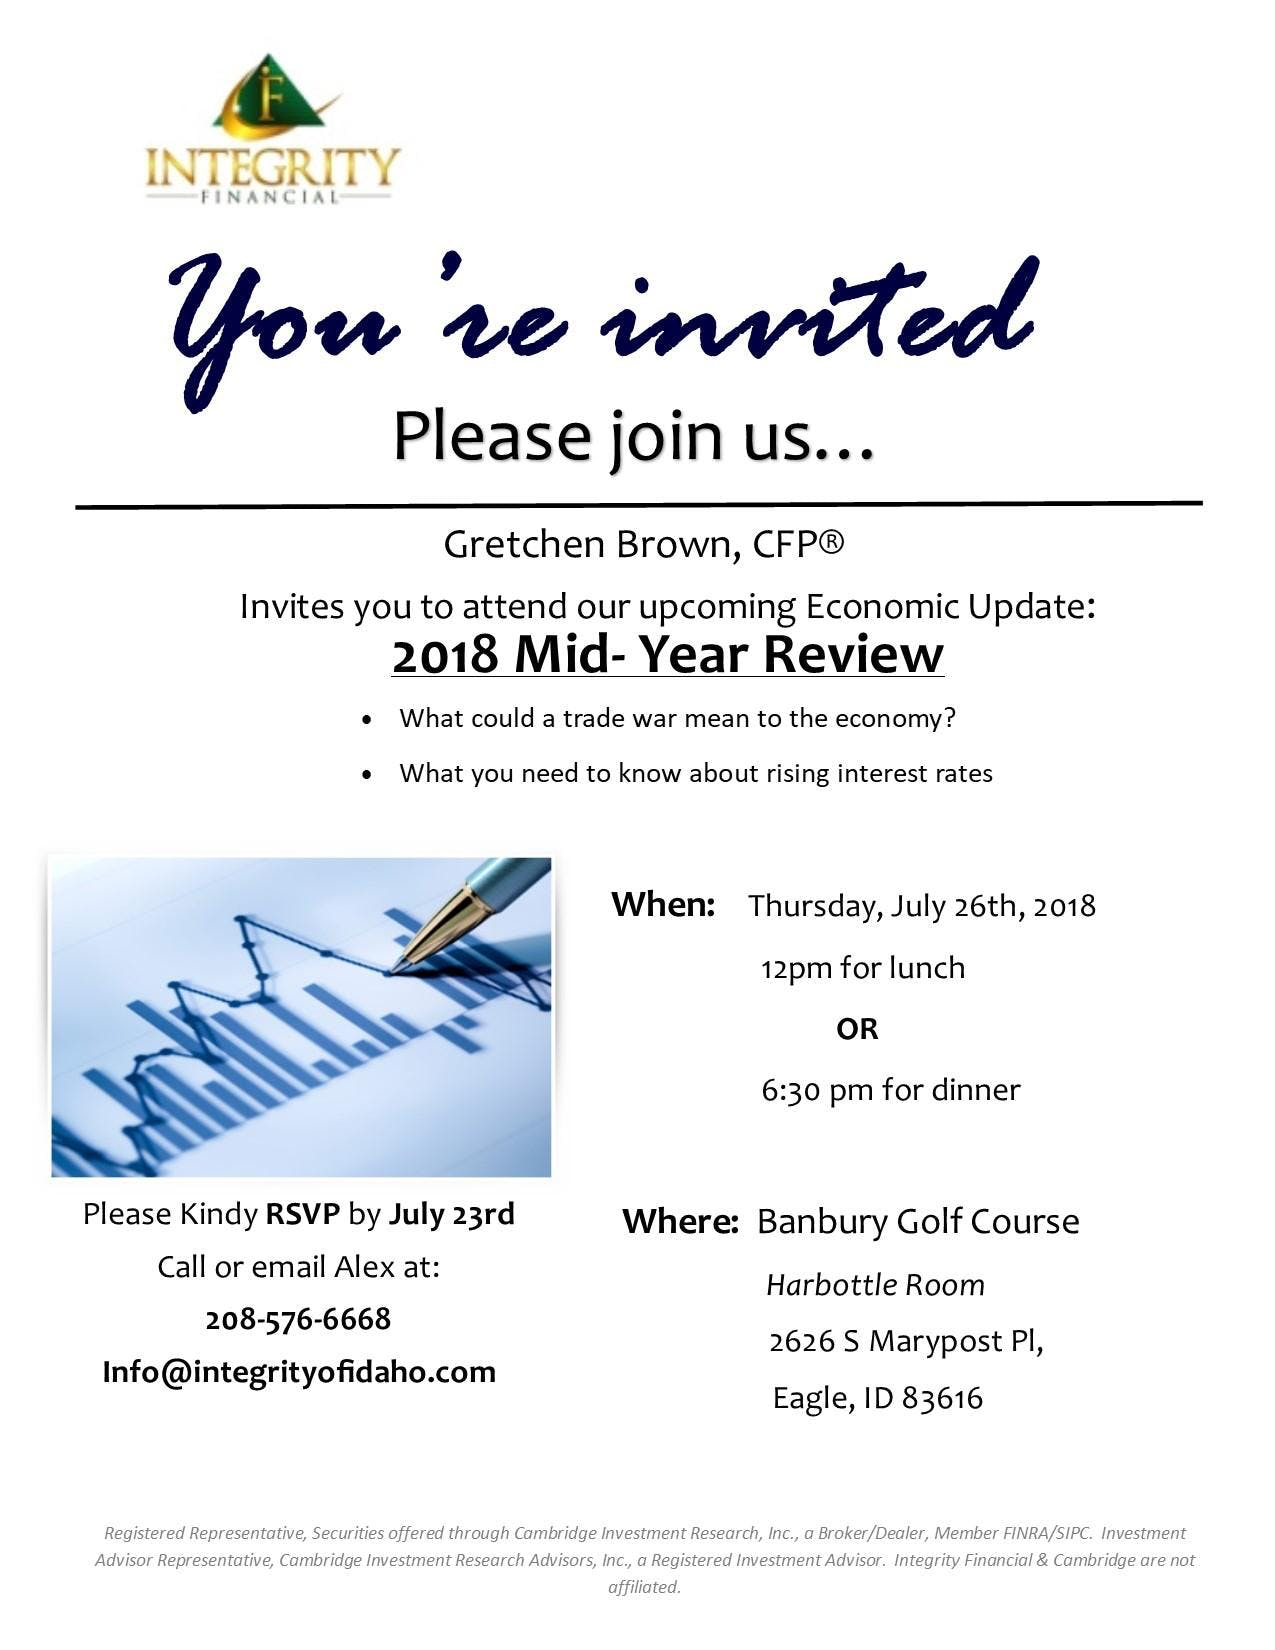 Economic Update: Mid-Year Review at Banbury Golf Course, Eagle